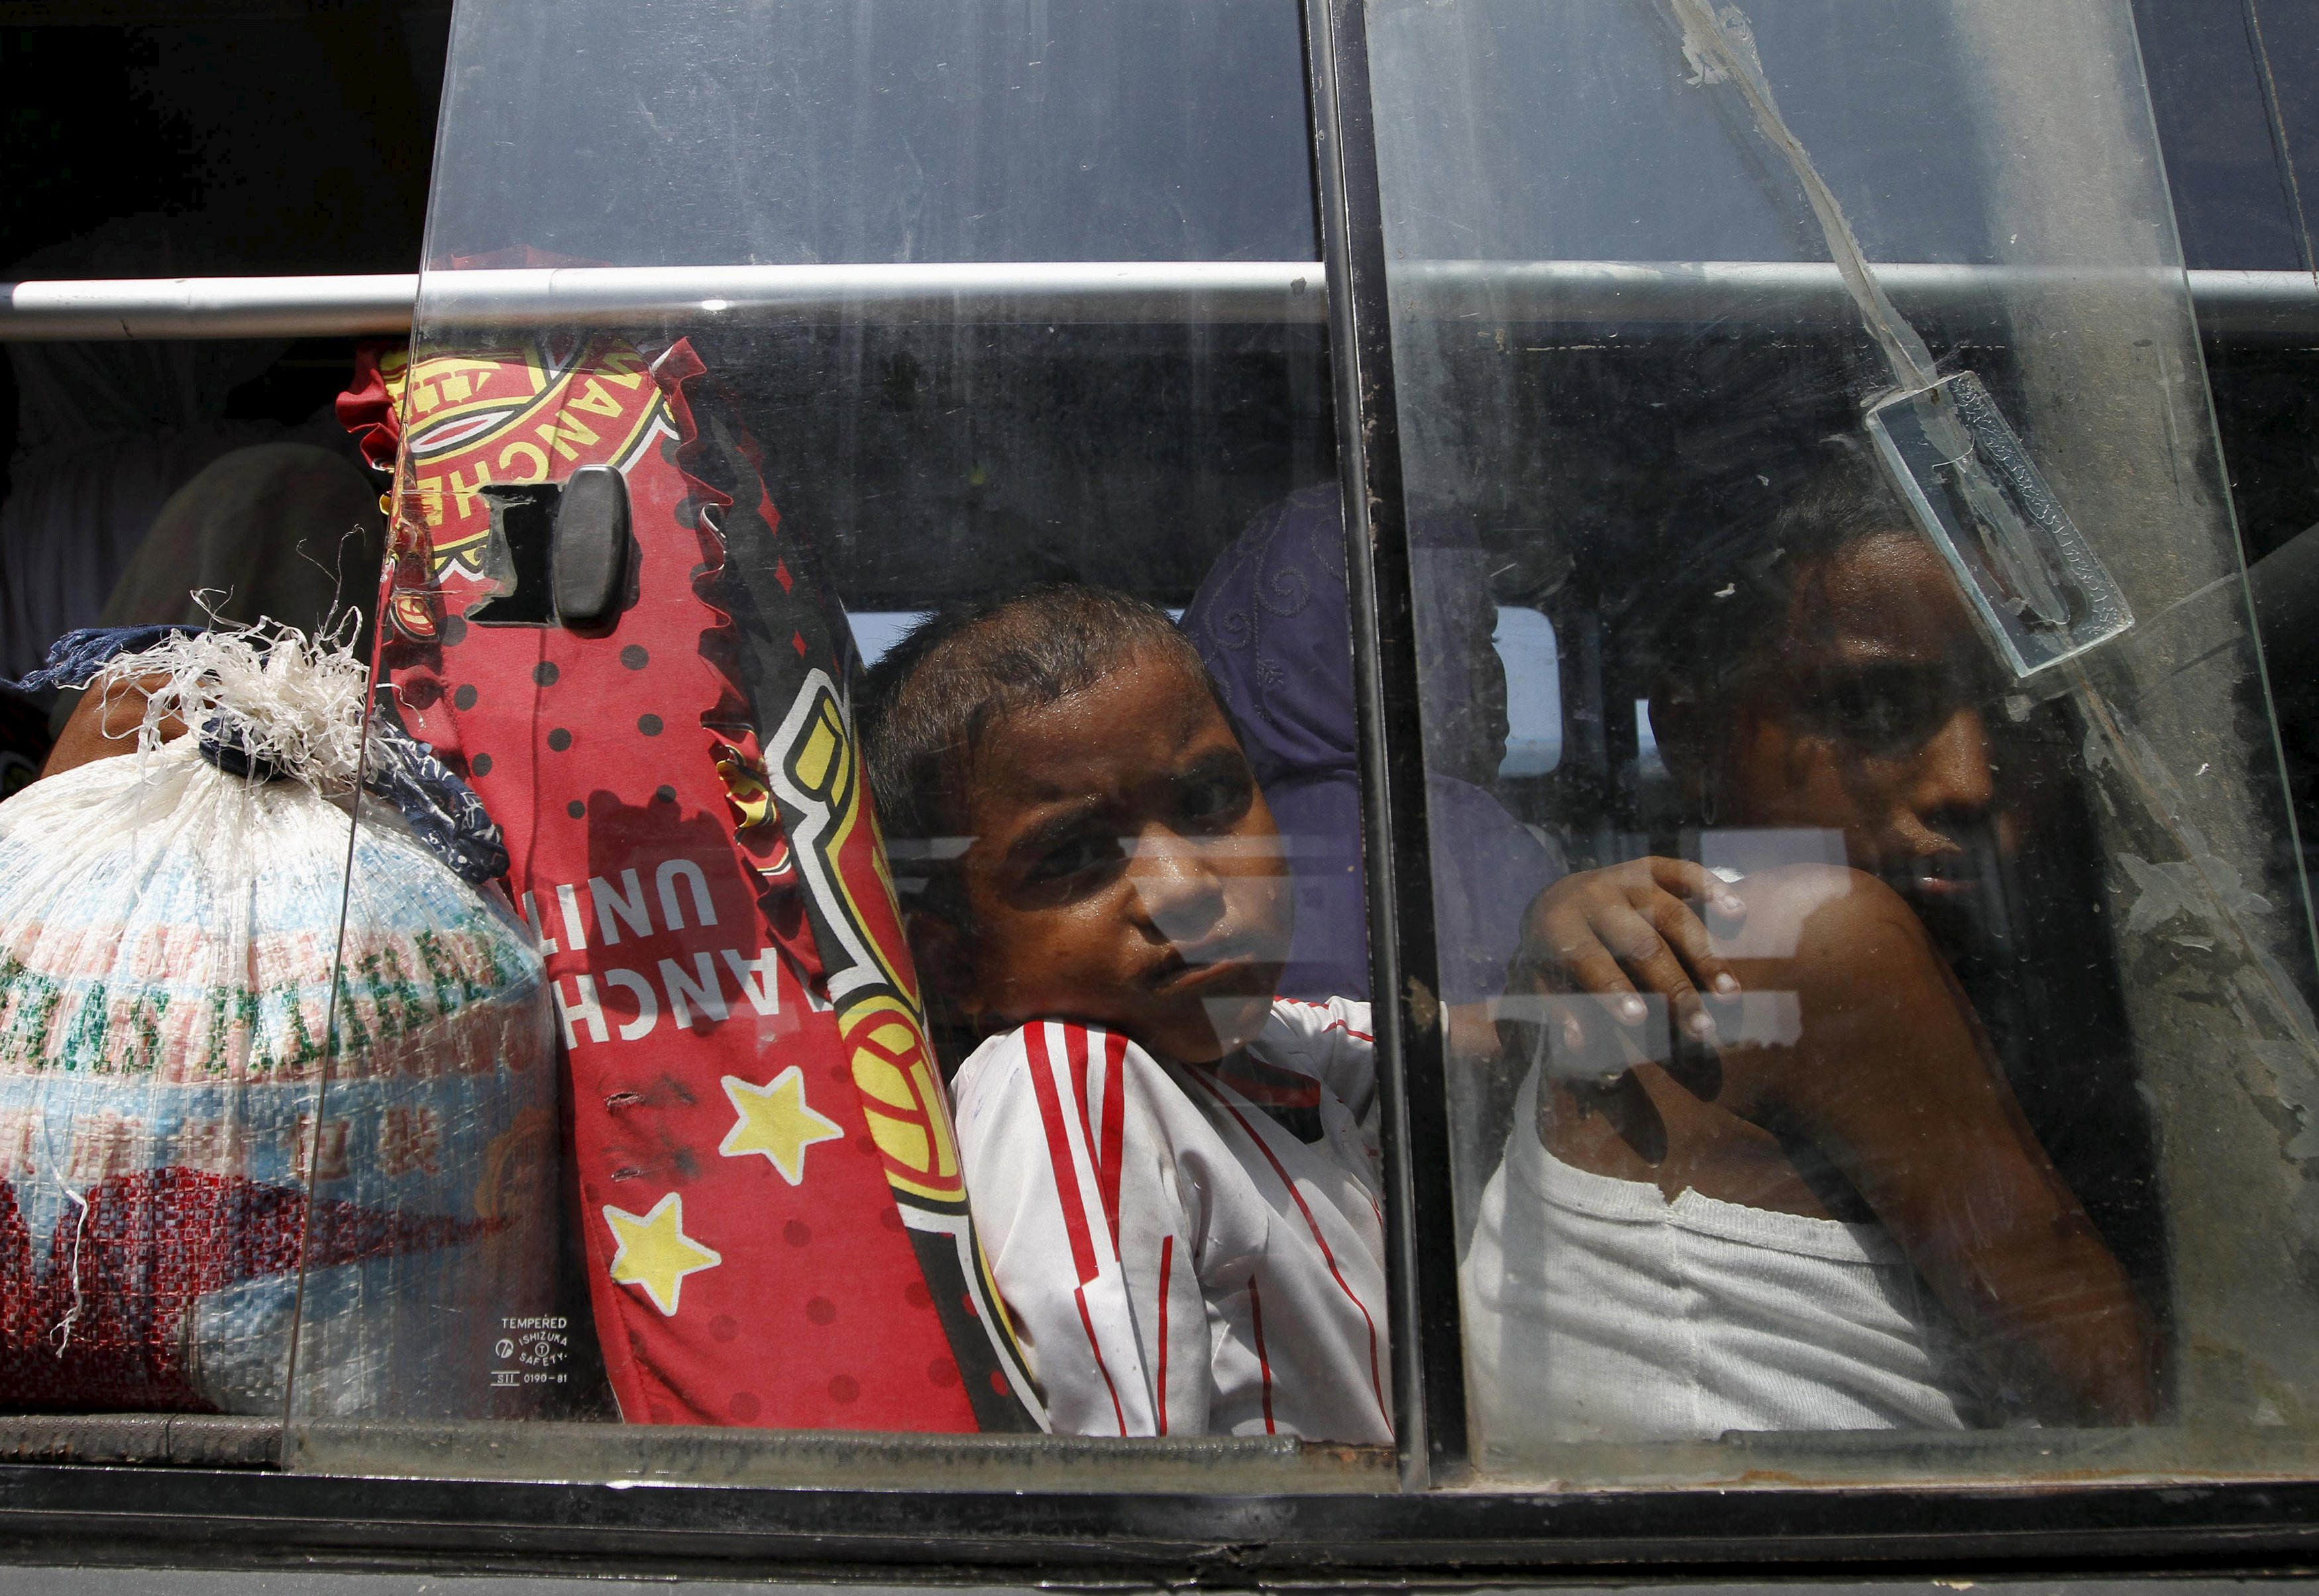 Asia boatpeople pushed back to sea as UN calls for rescue